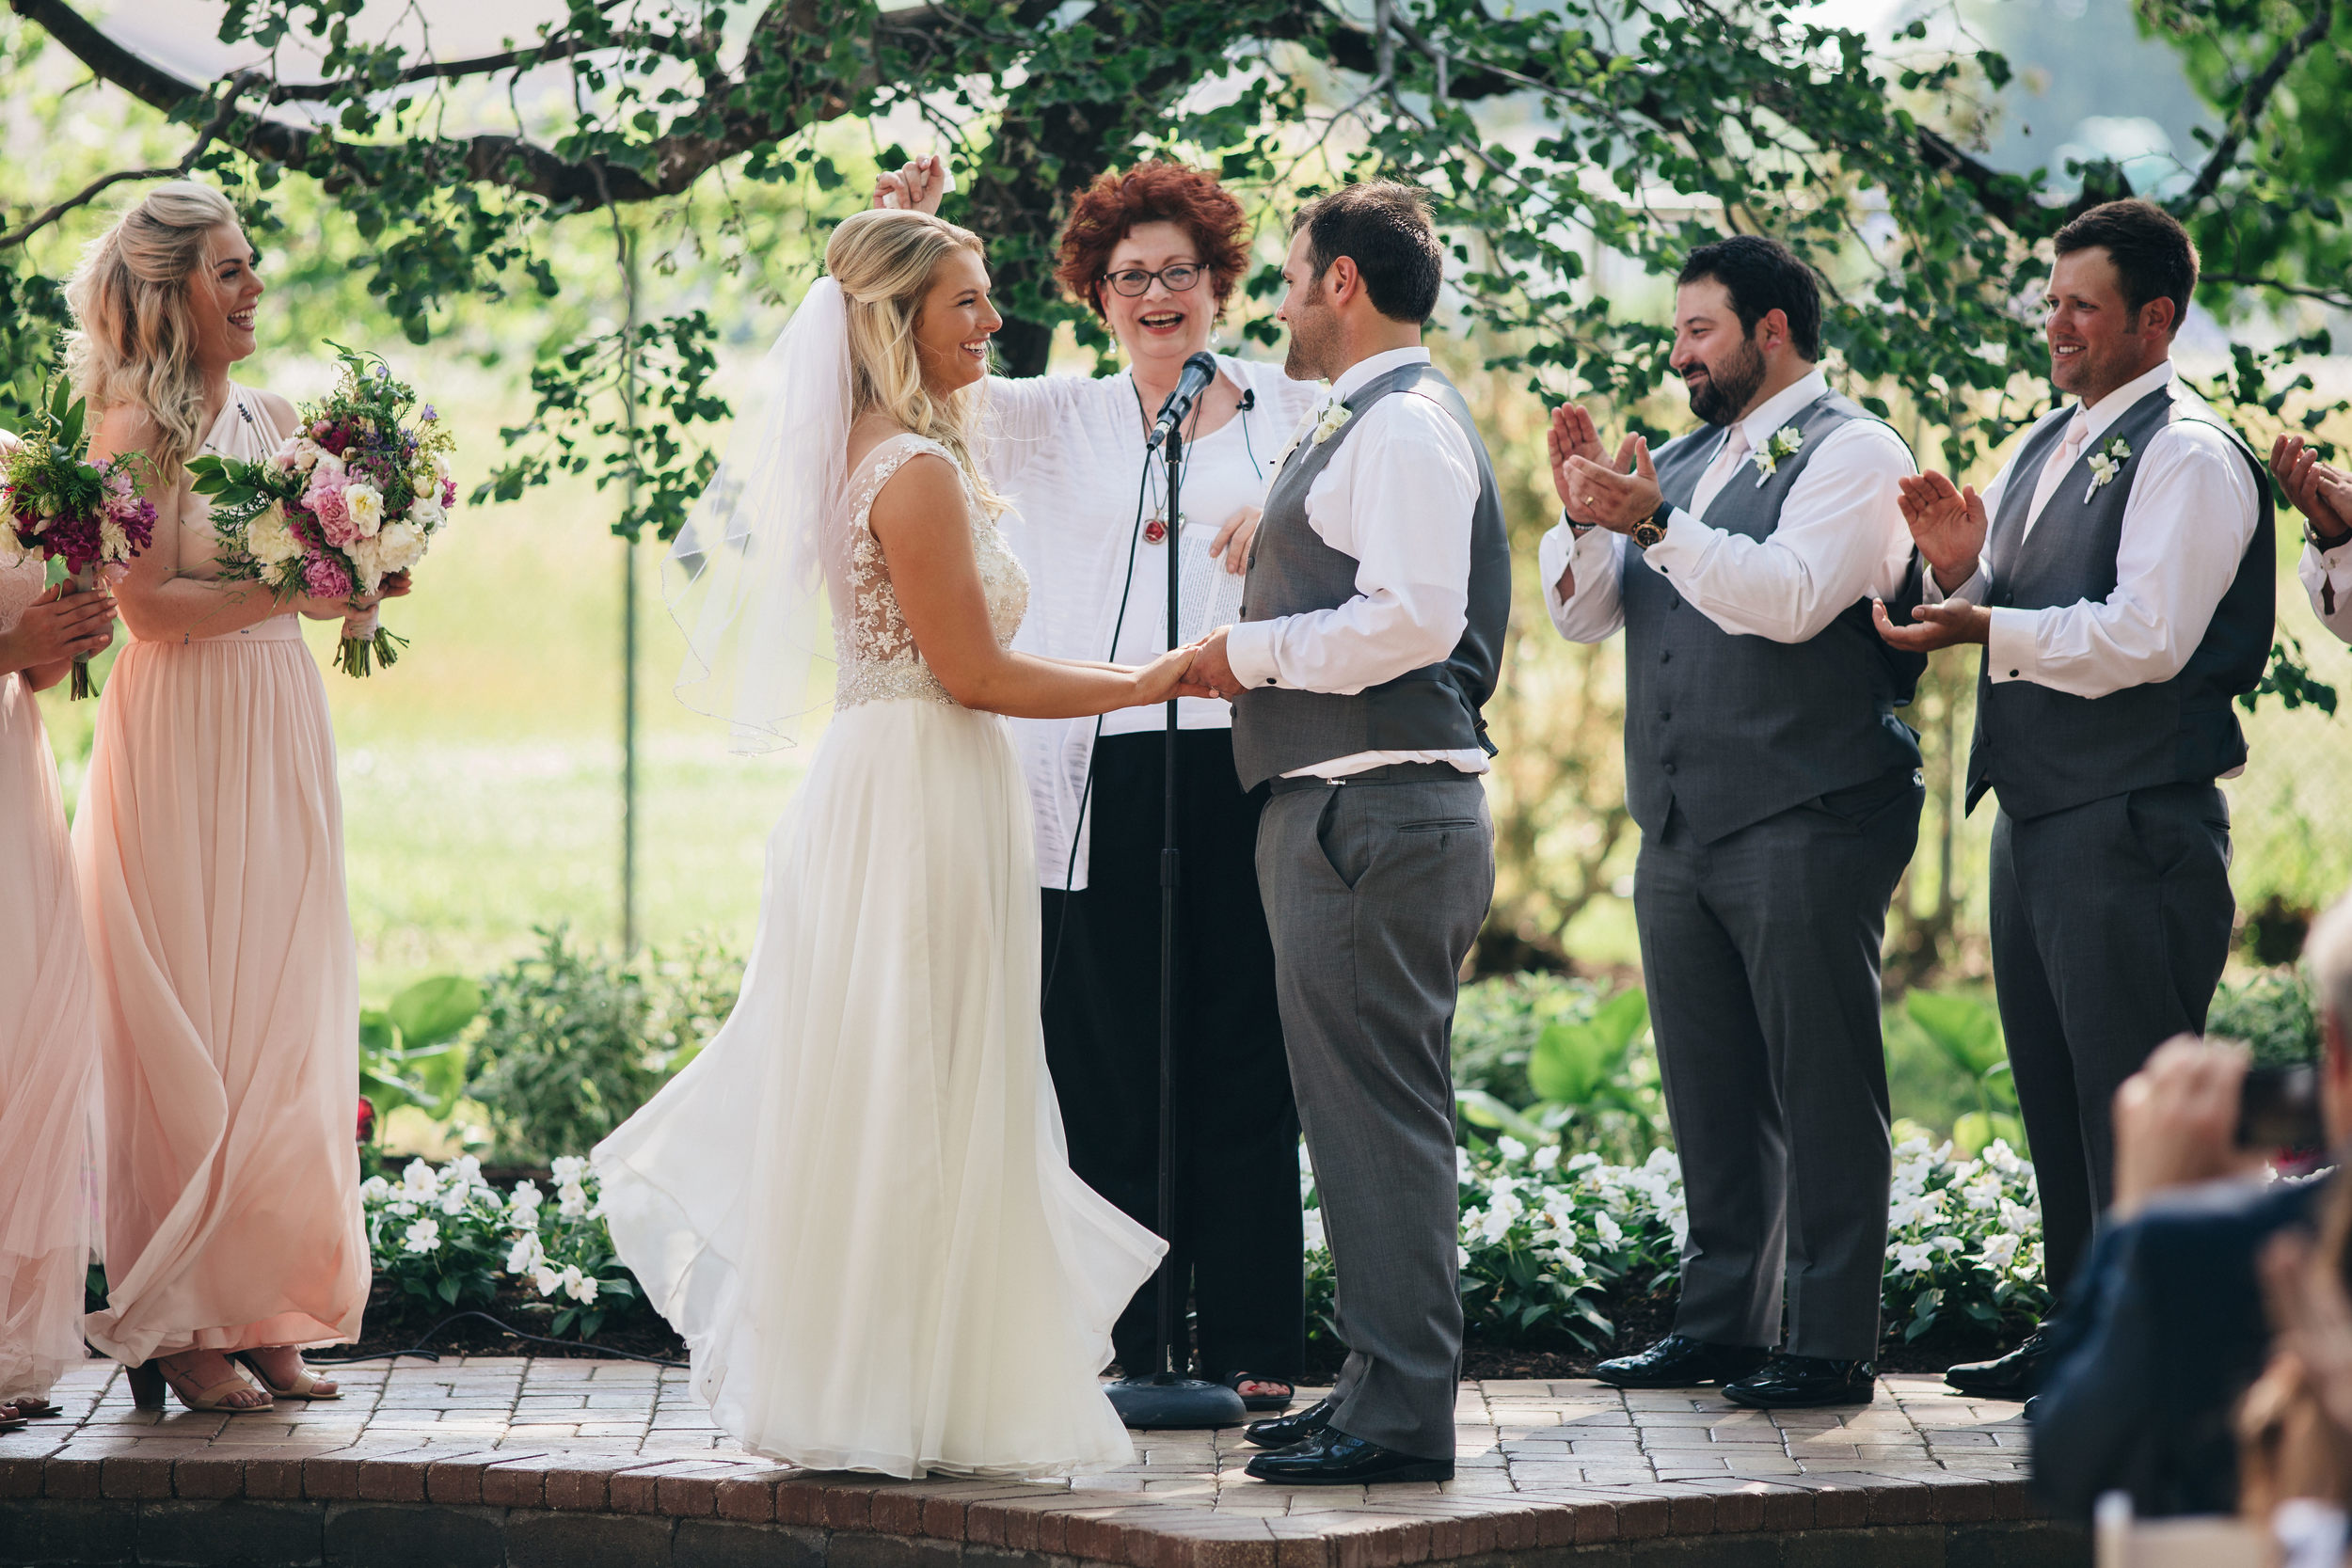 Bride and groom at altar in outdoor summer wedding.